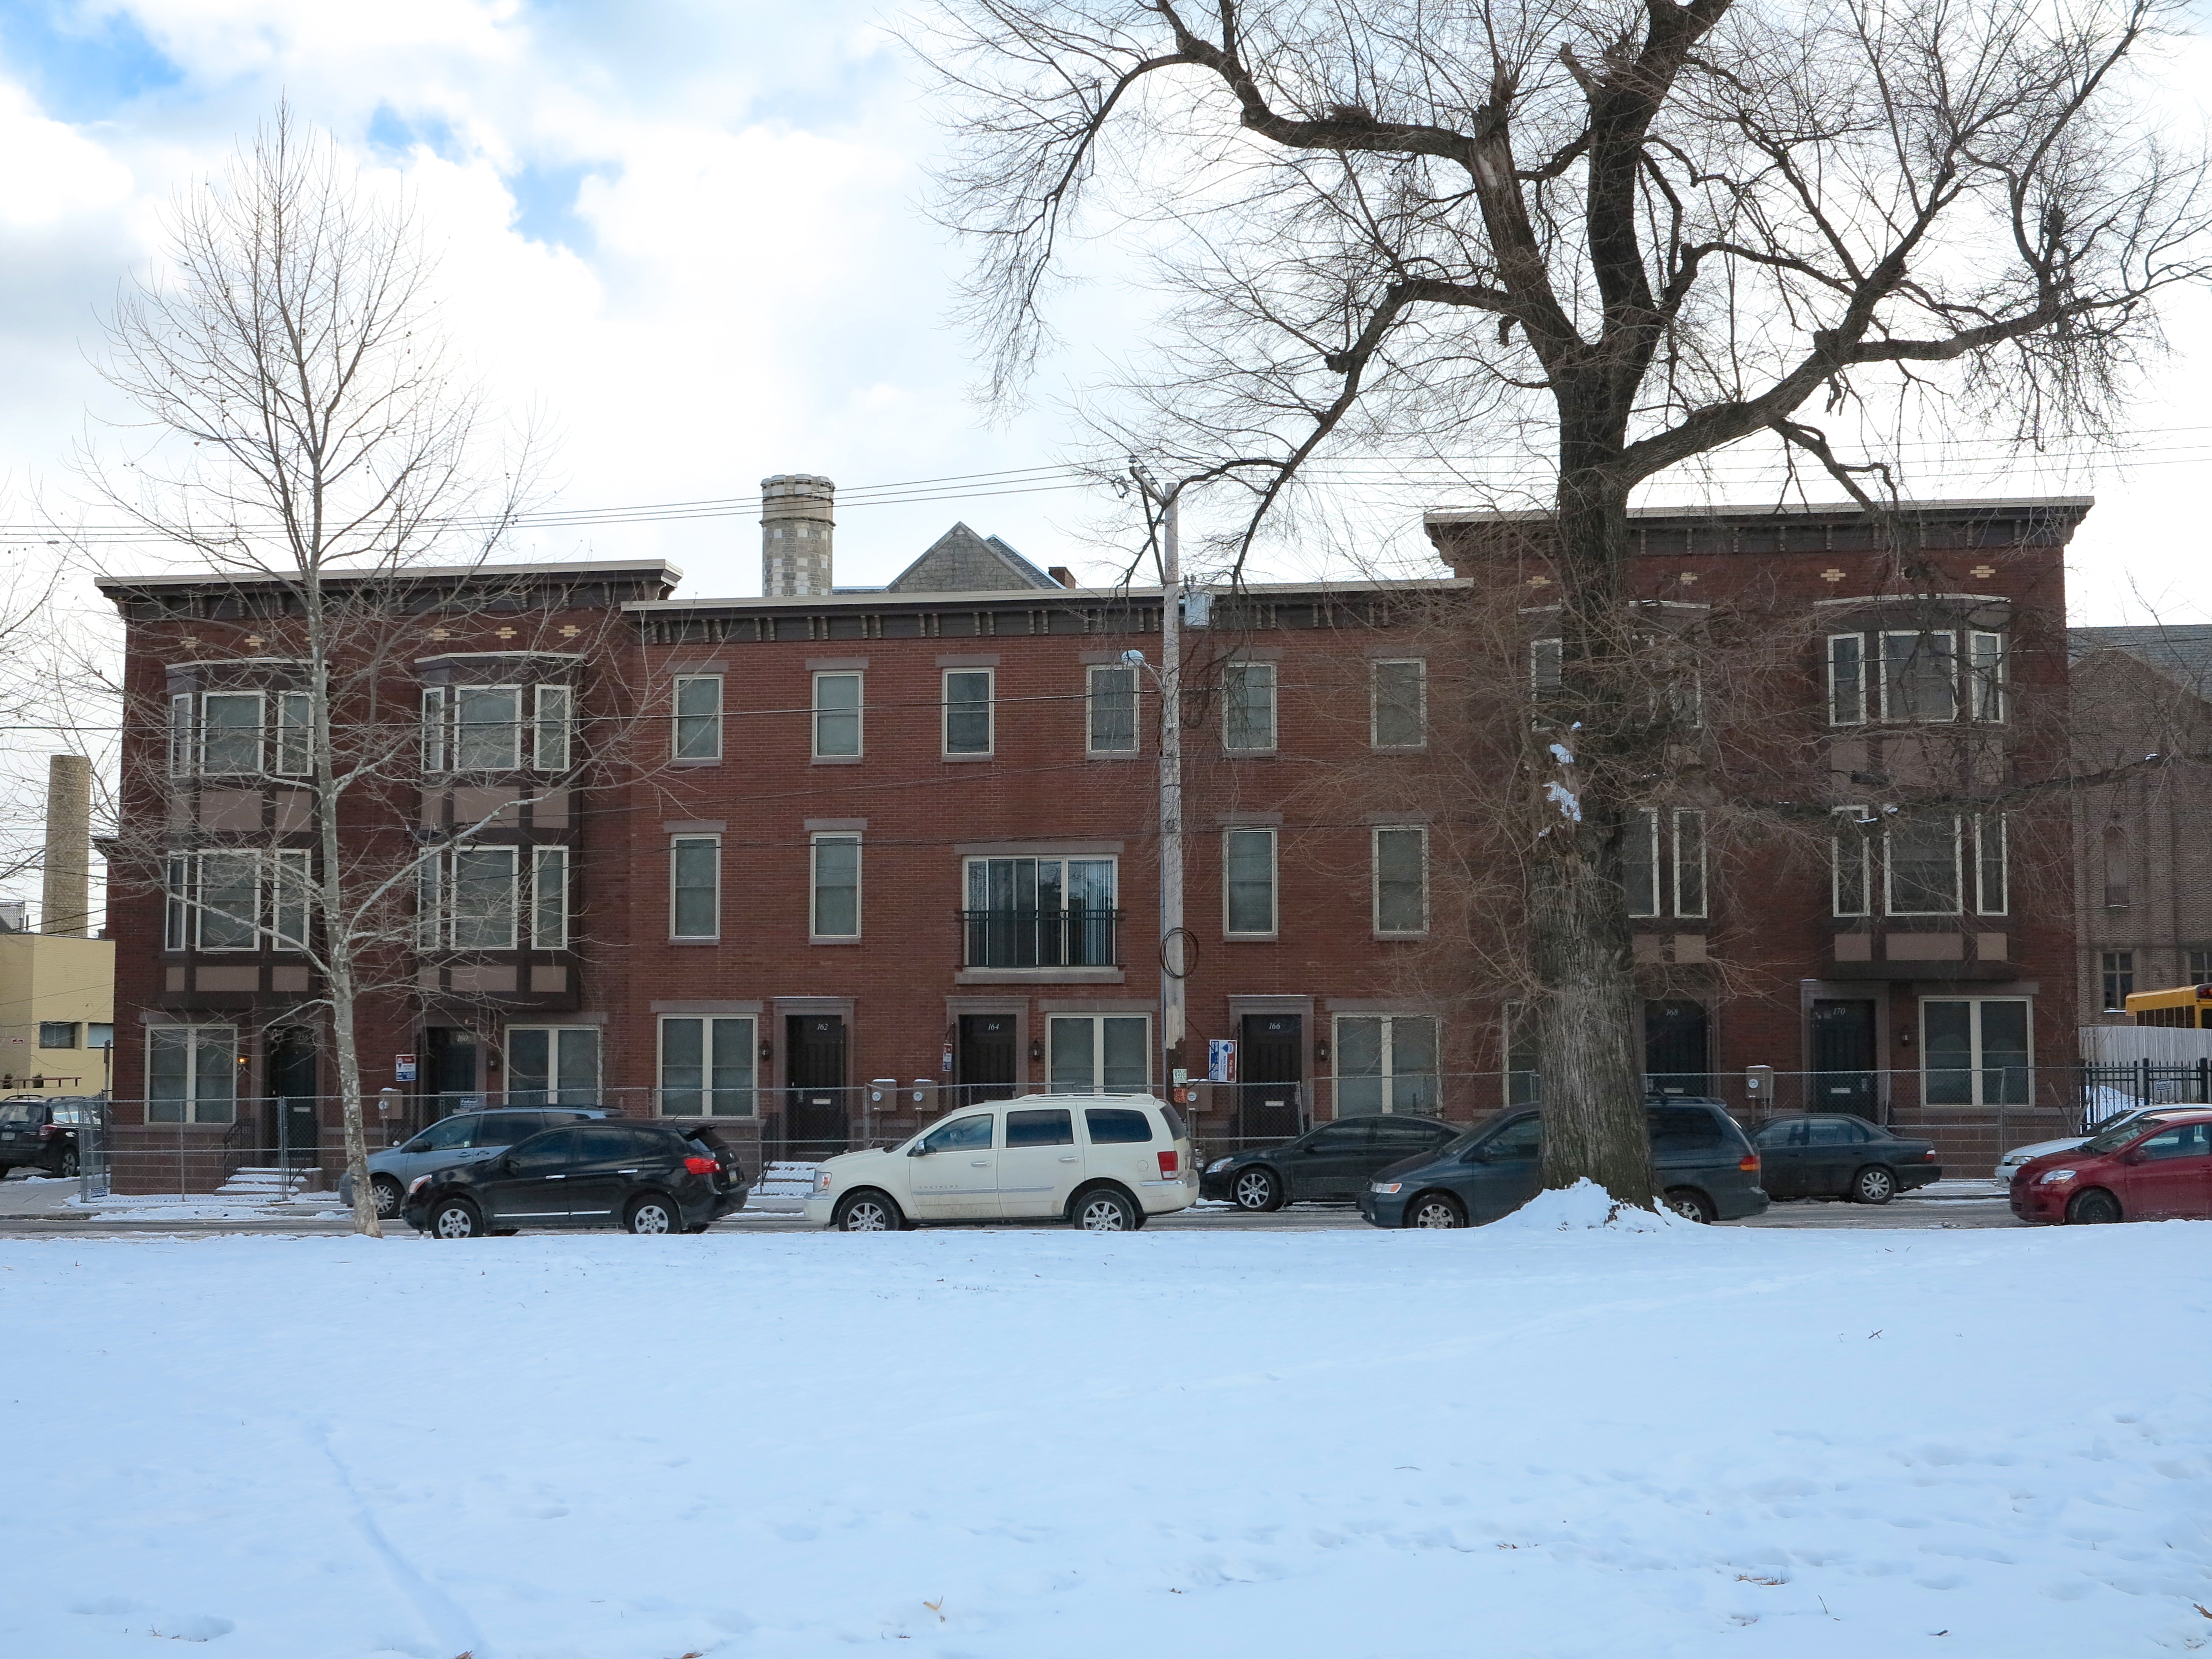 Townhomes at St. Boniface, 2015